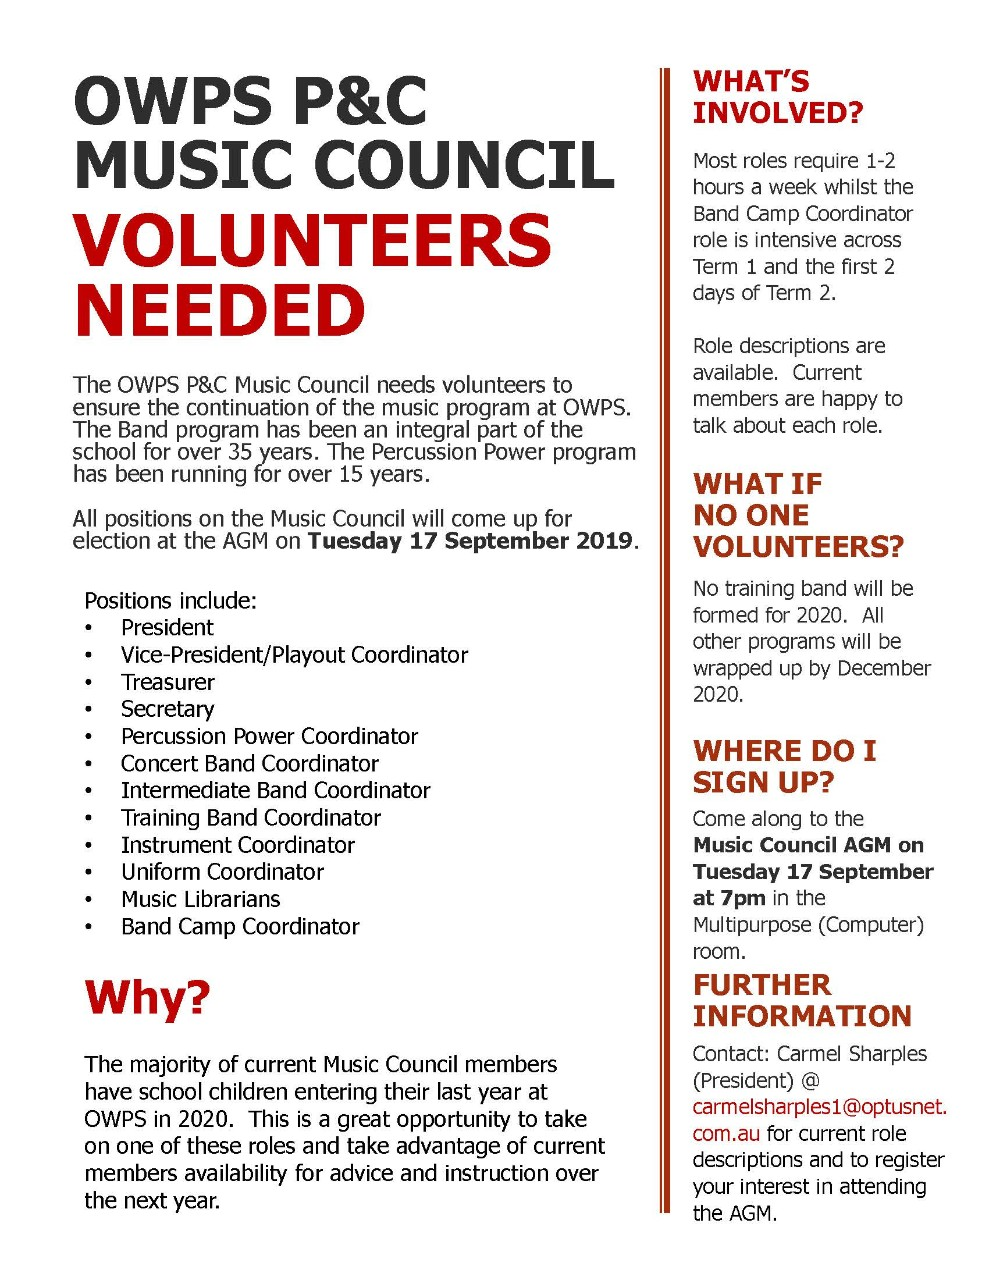 OWPS P and C MUSIC COUNCIL VOLUNTEERS NEEDED